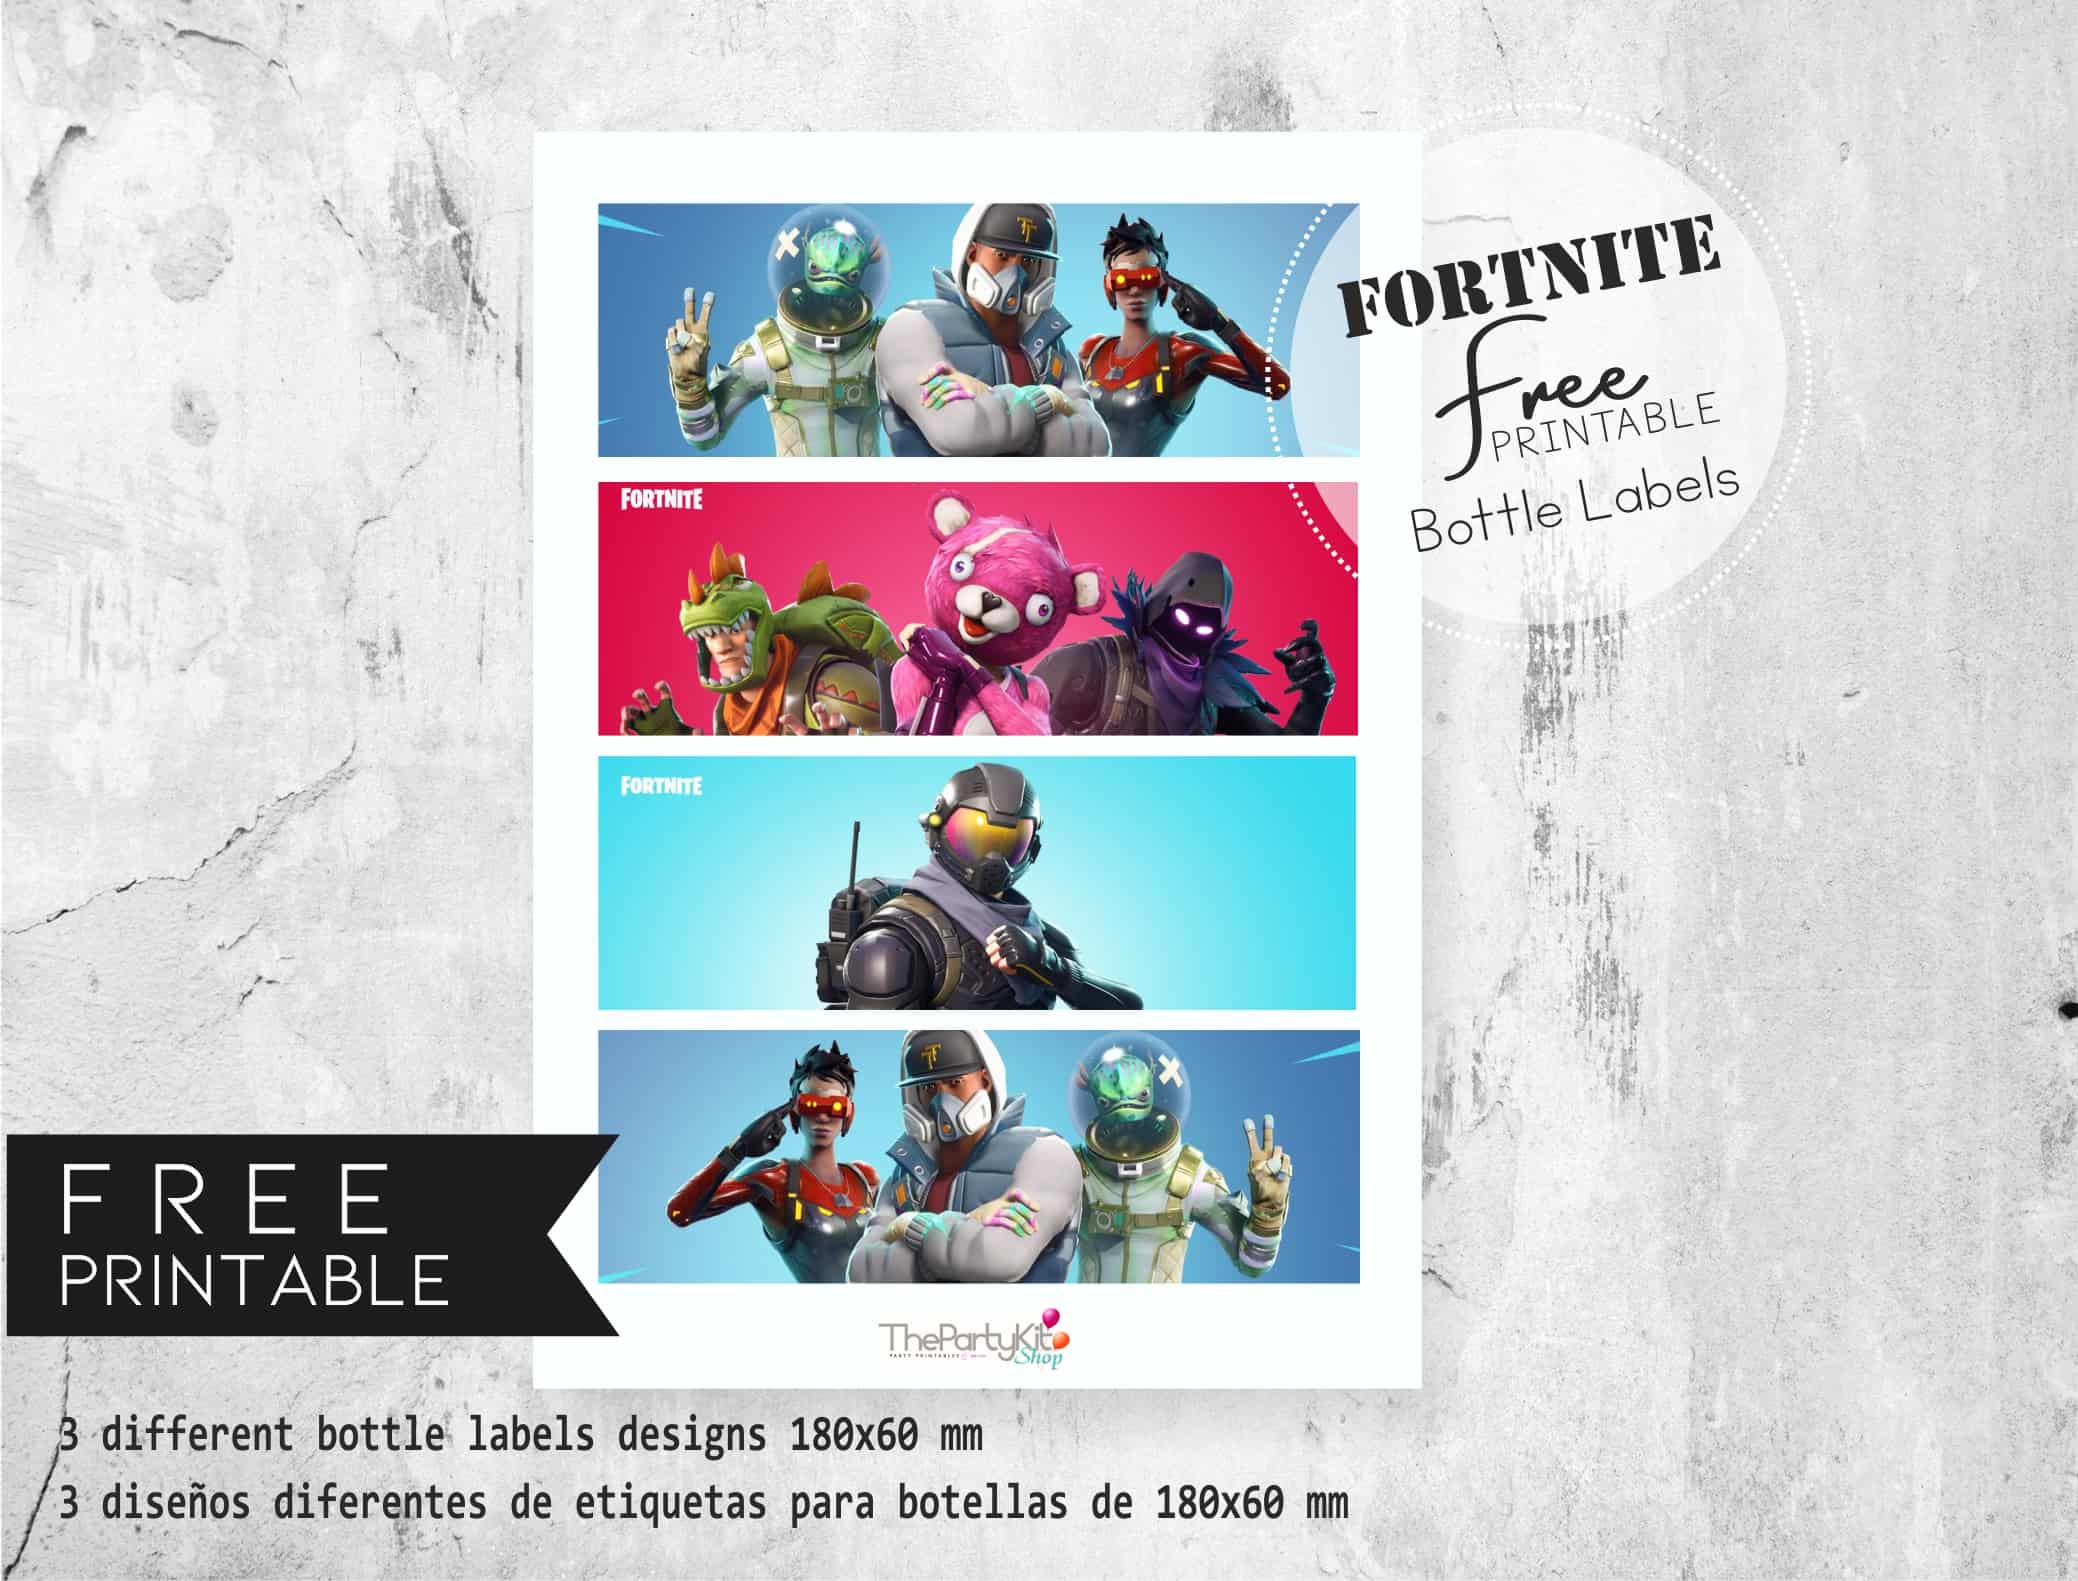 fornite free bottle labels